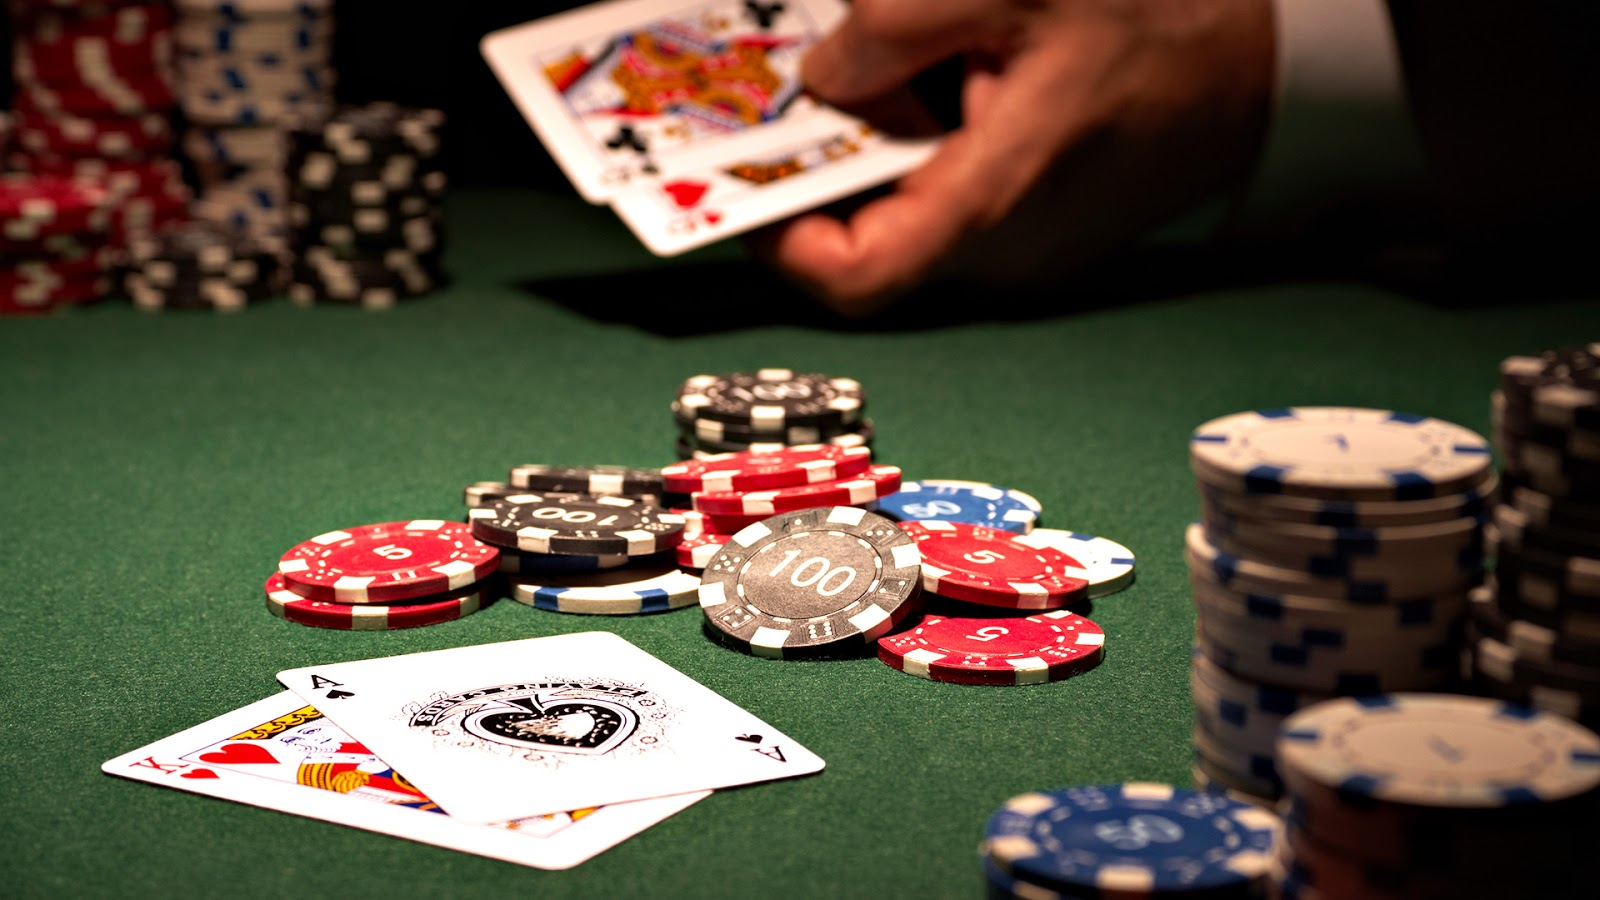 What Risks are Involved in Gambling – Online Poker Games